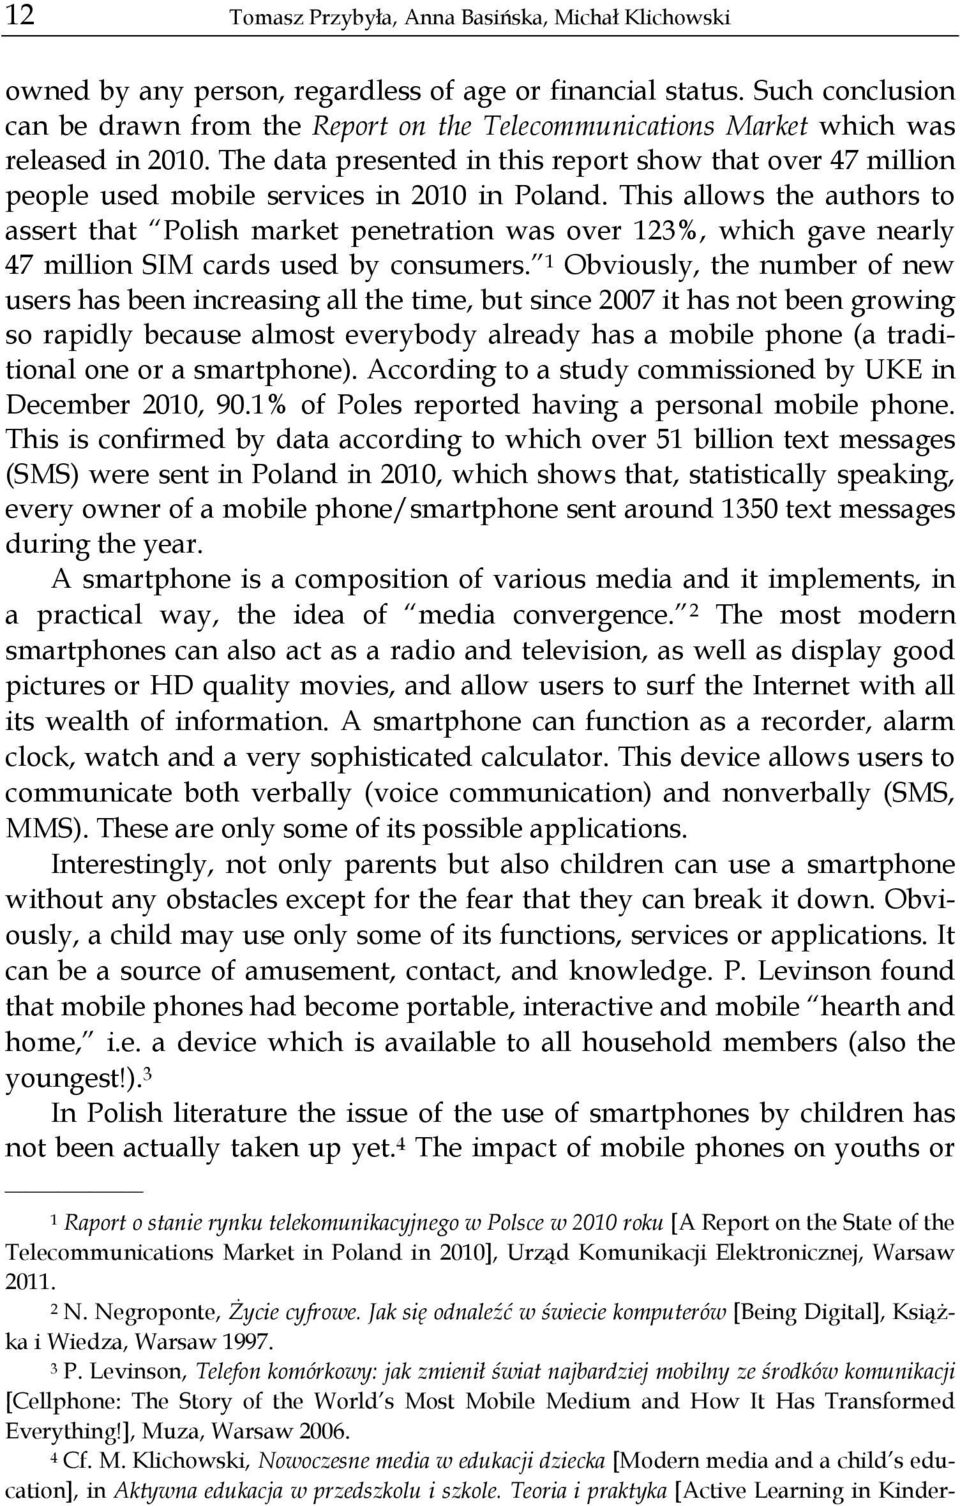 The data presented in this report show that over 47 million people used mobile services in 2010 in Poland.